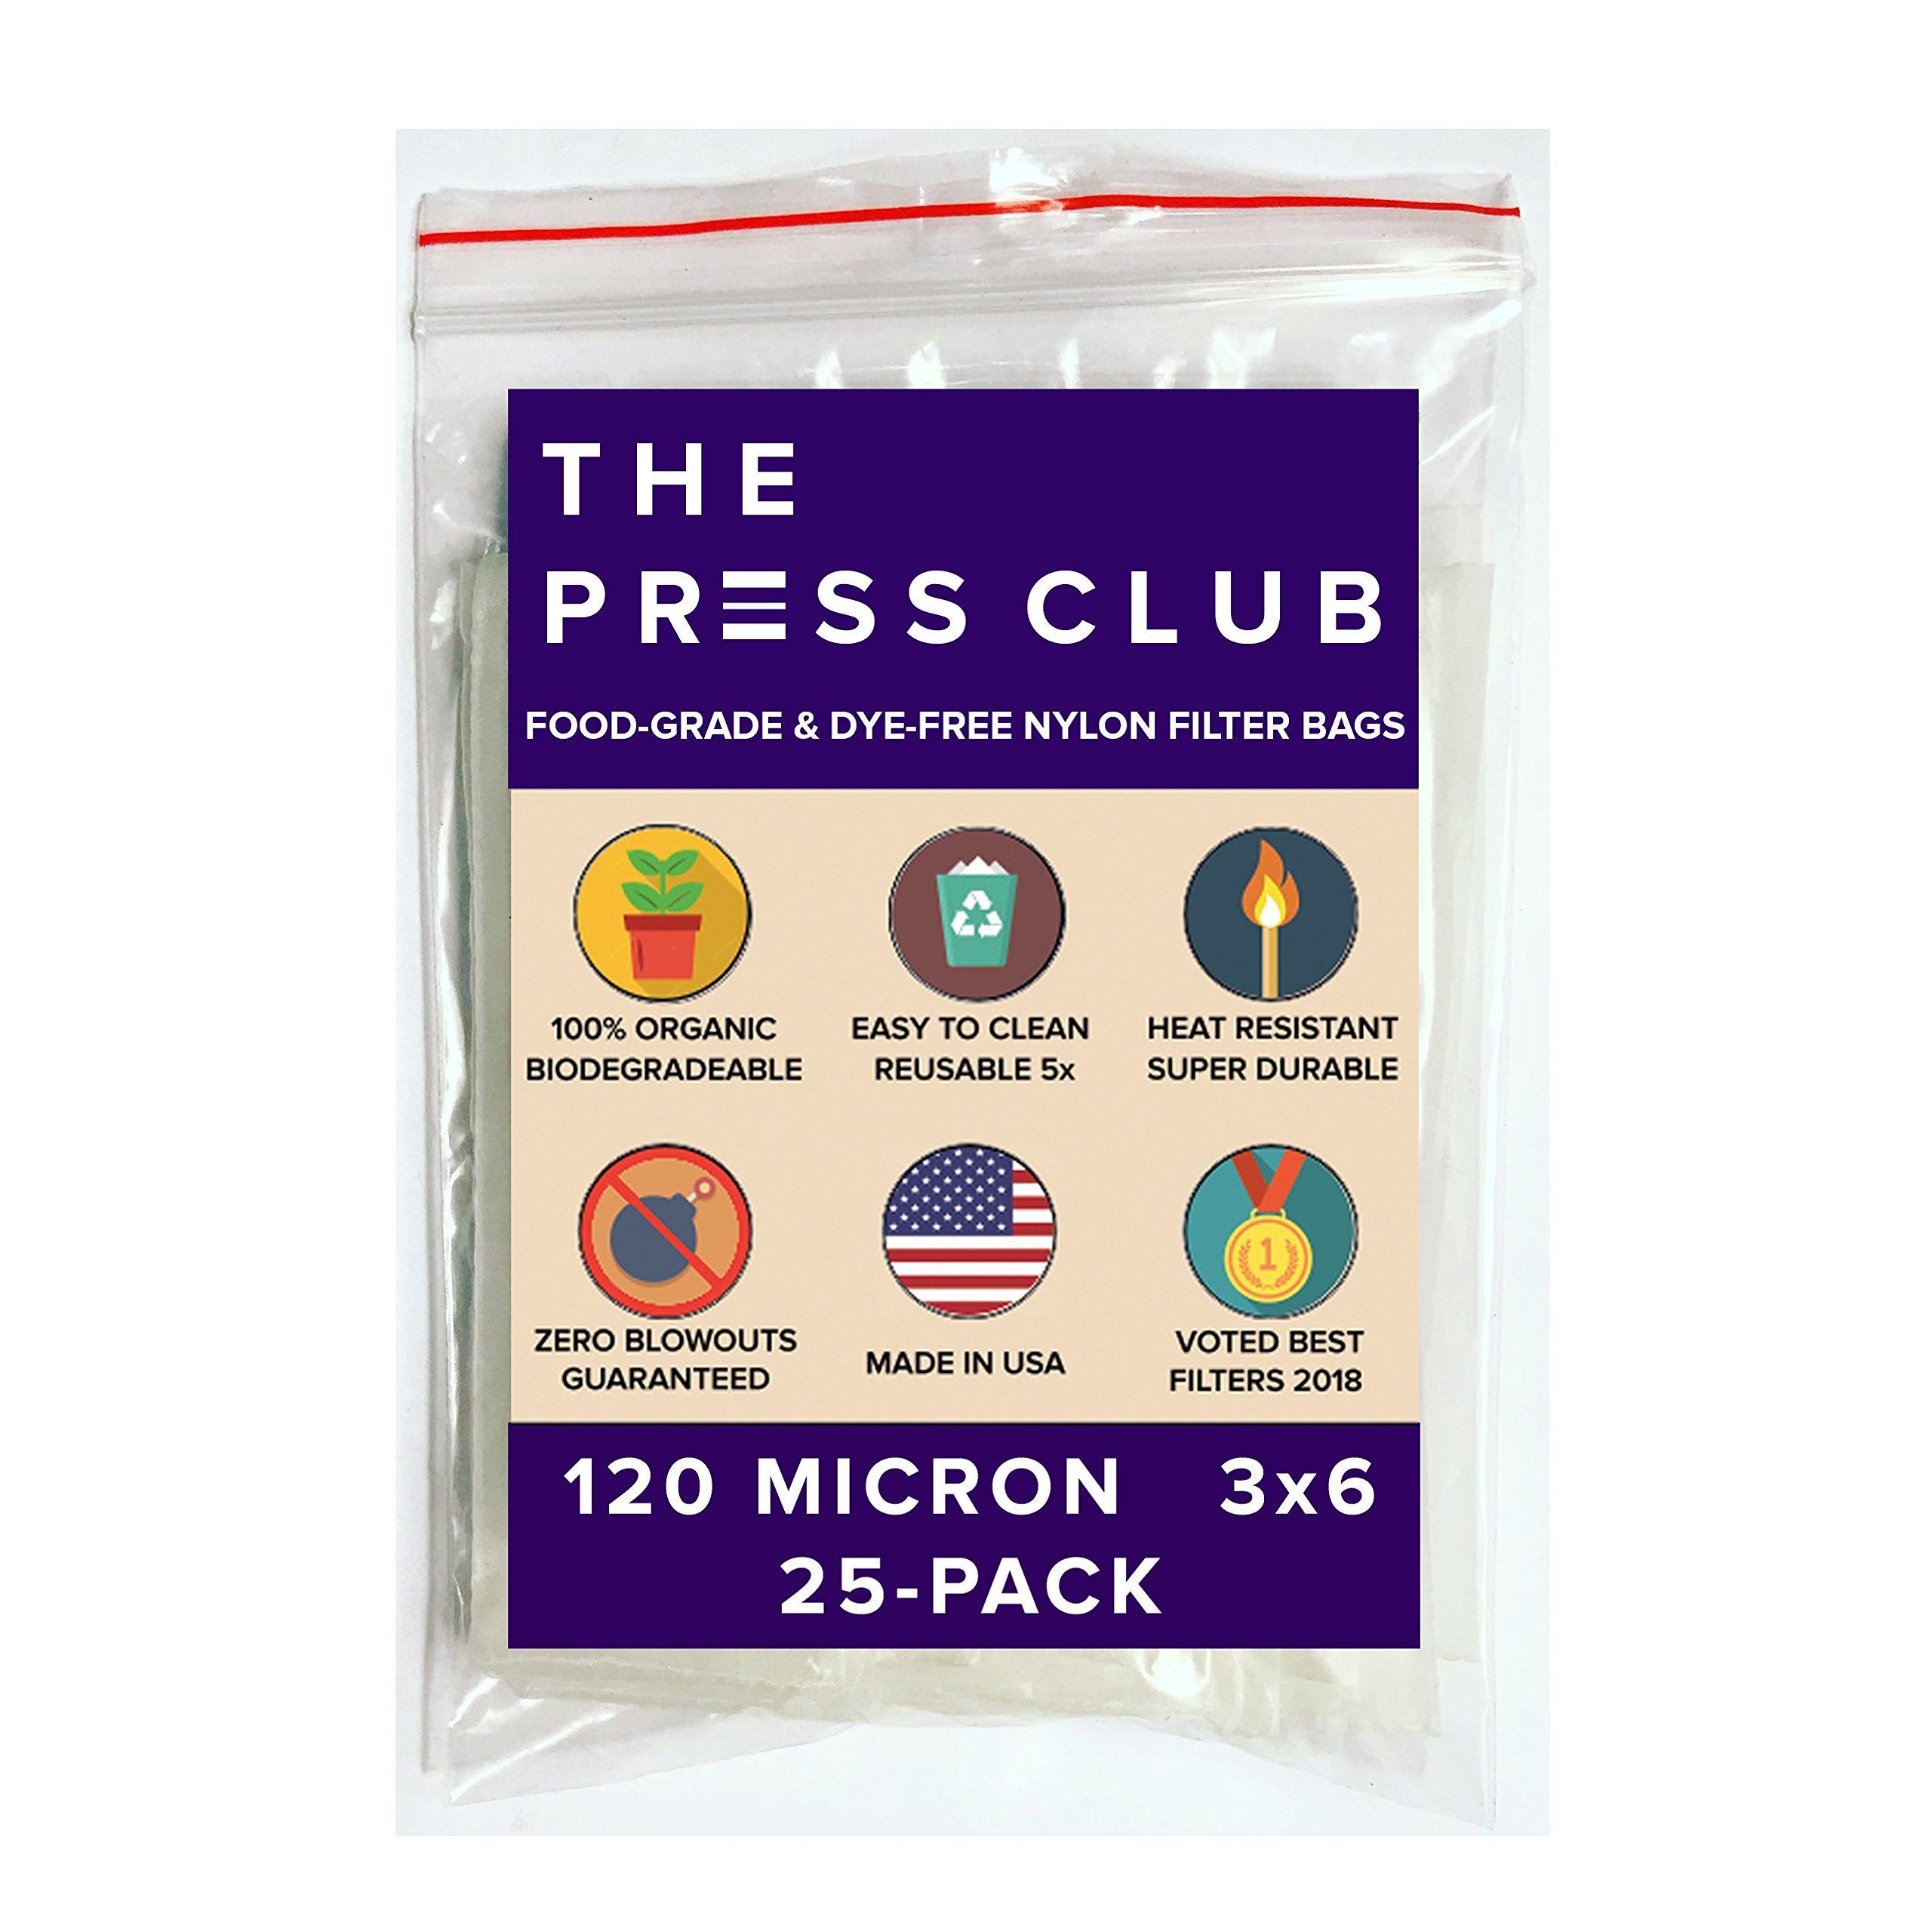 120 Micron | Premium Nylon Tea Filter Press Screen Bags | 3'' x 6'' | 25 Pack | Zero Blowout Guarantee | All Micron & Sizes Available